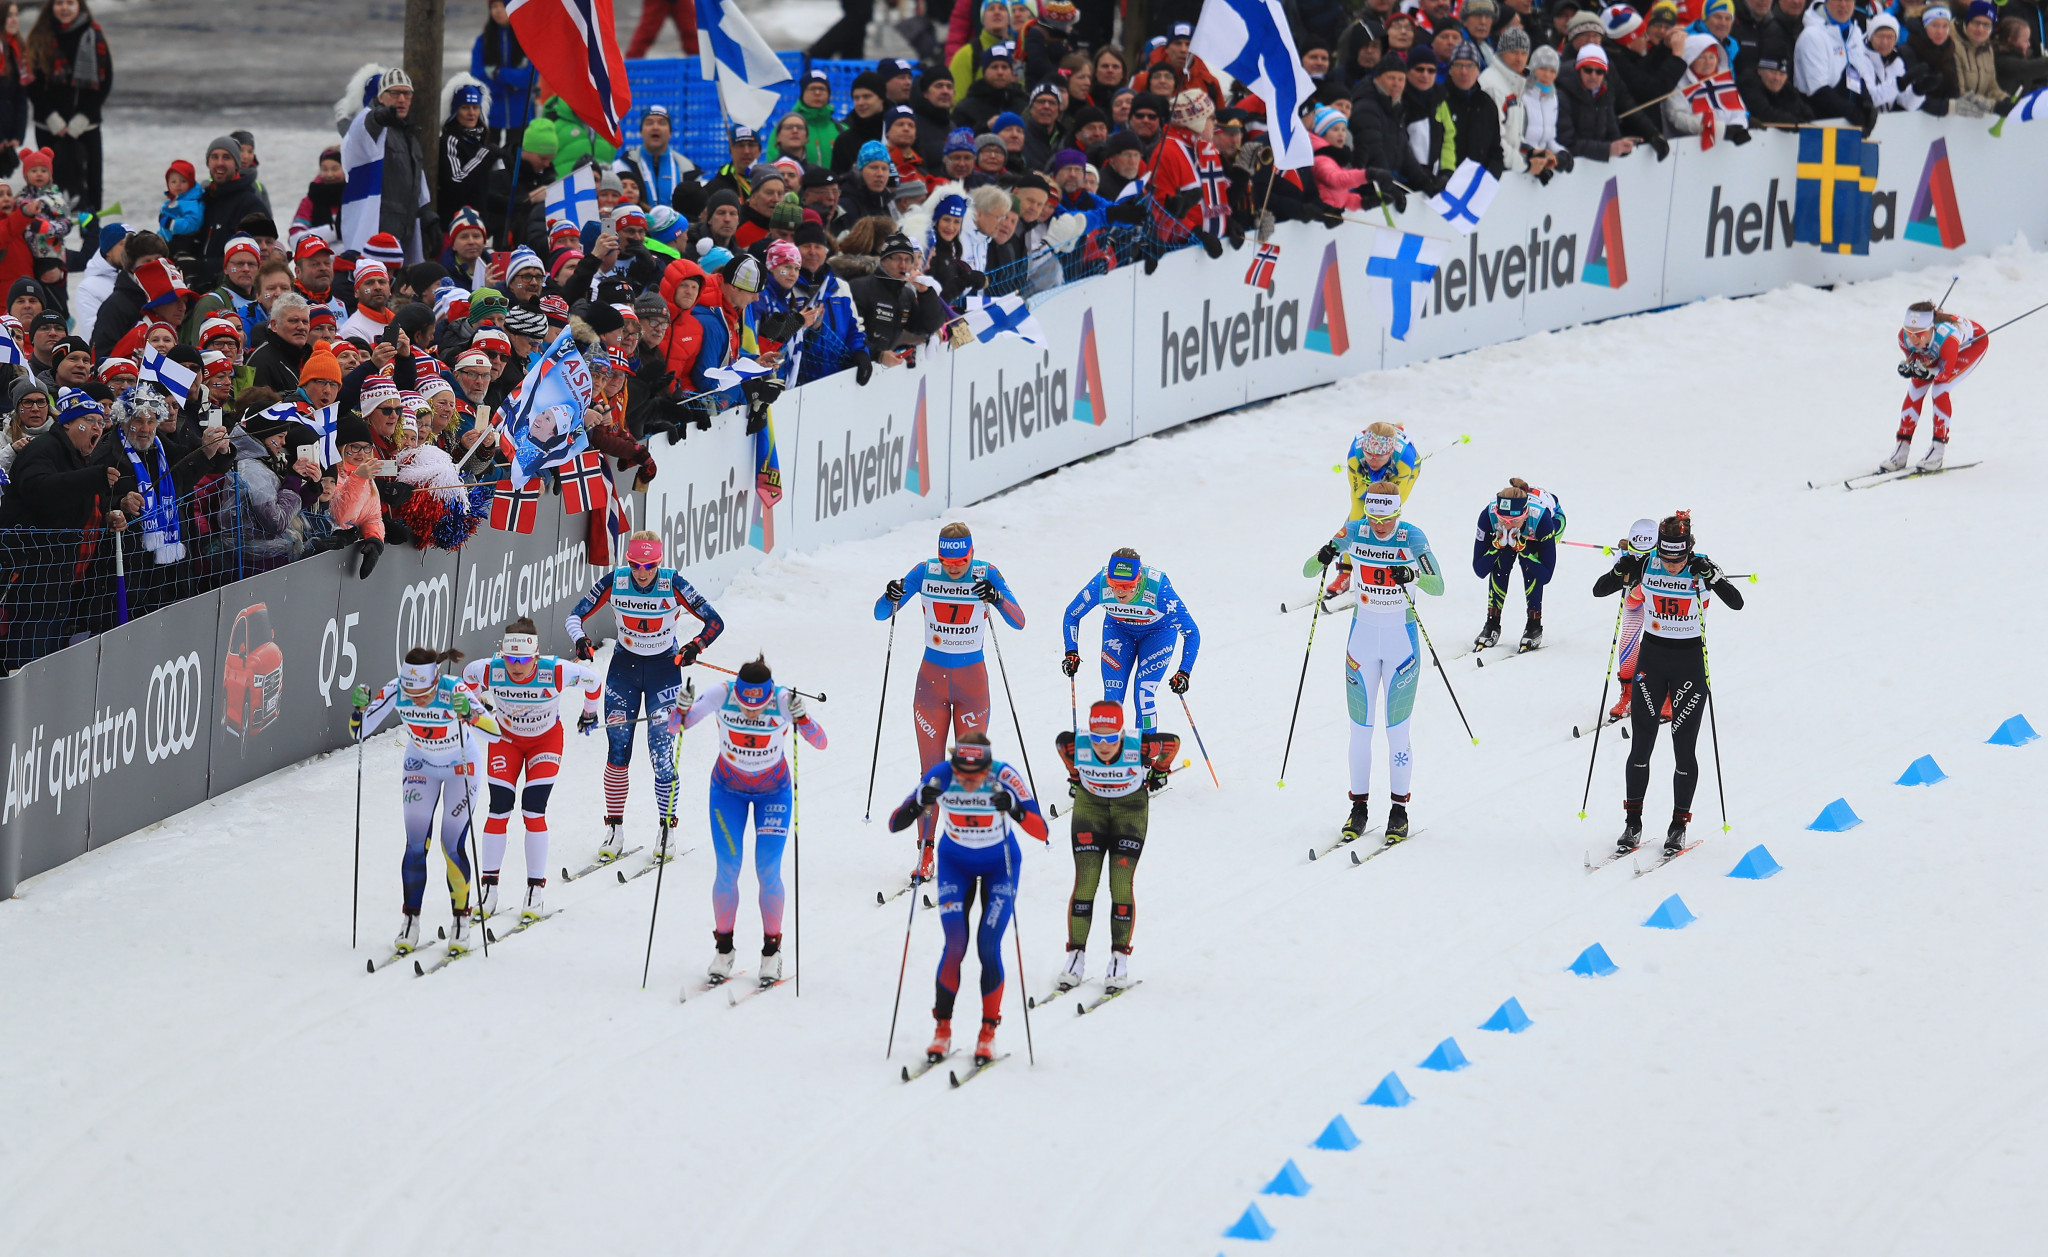 Viessmann Group named main sponsor for 2019 and 2022 Nordic World Ski Championships